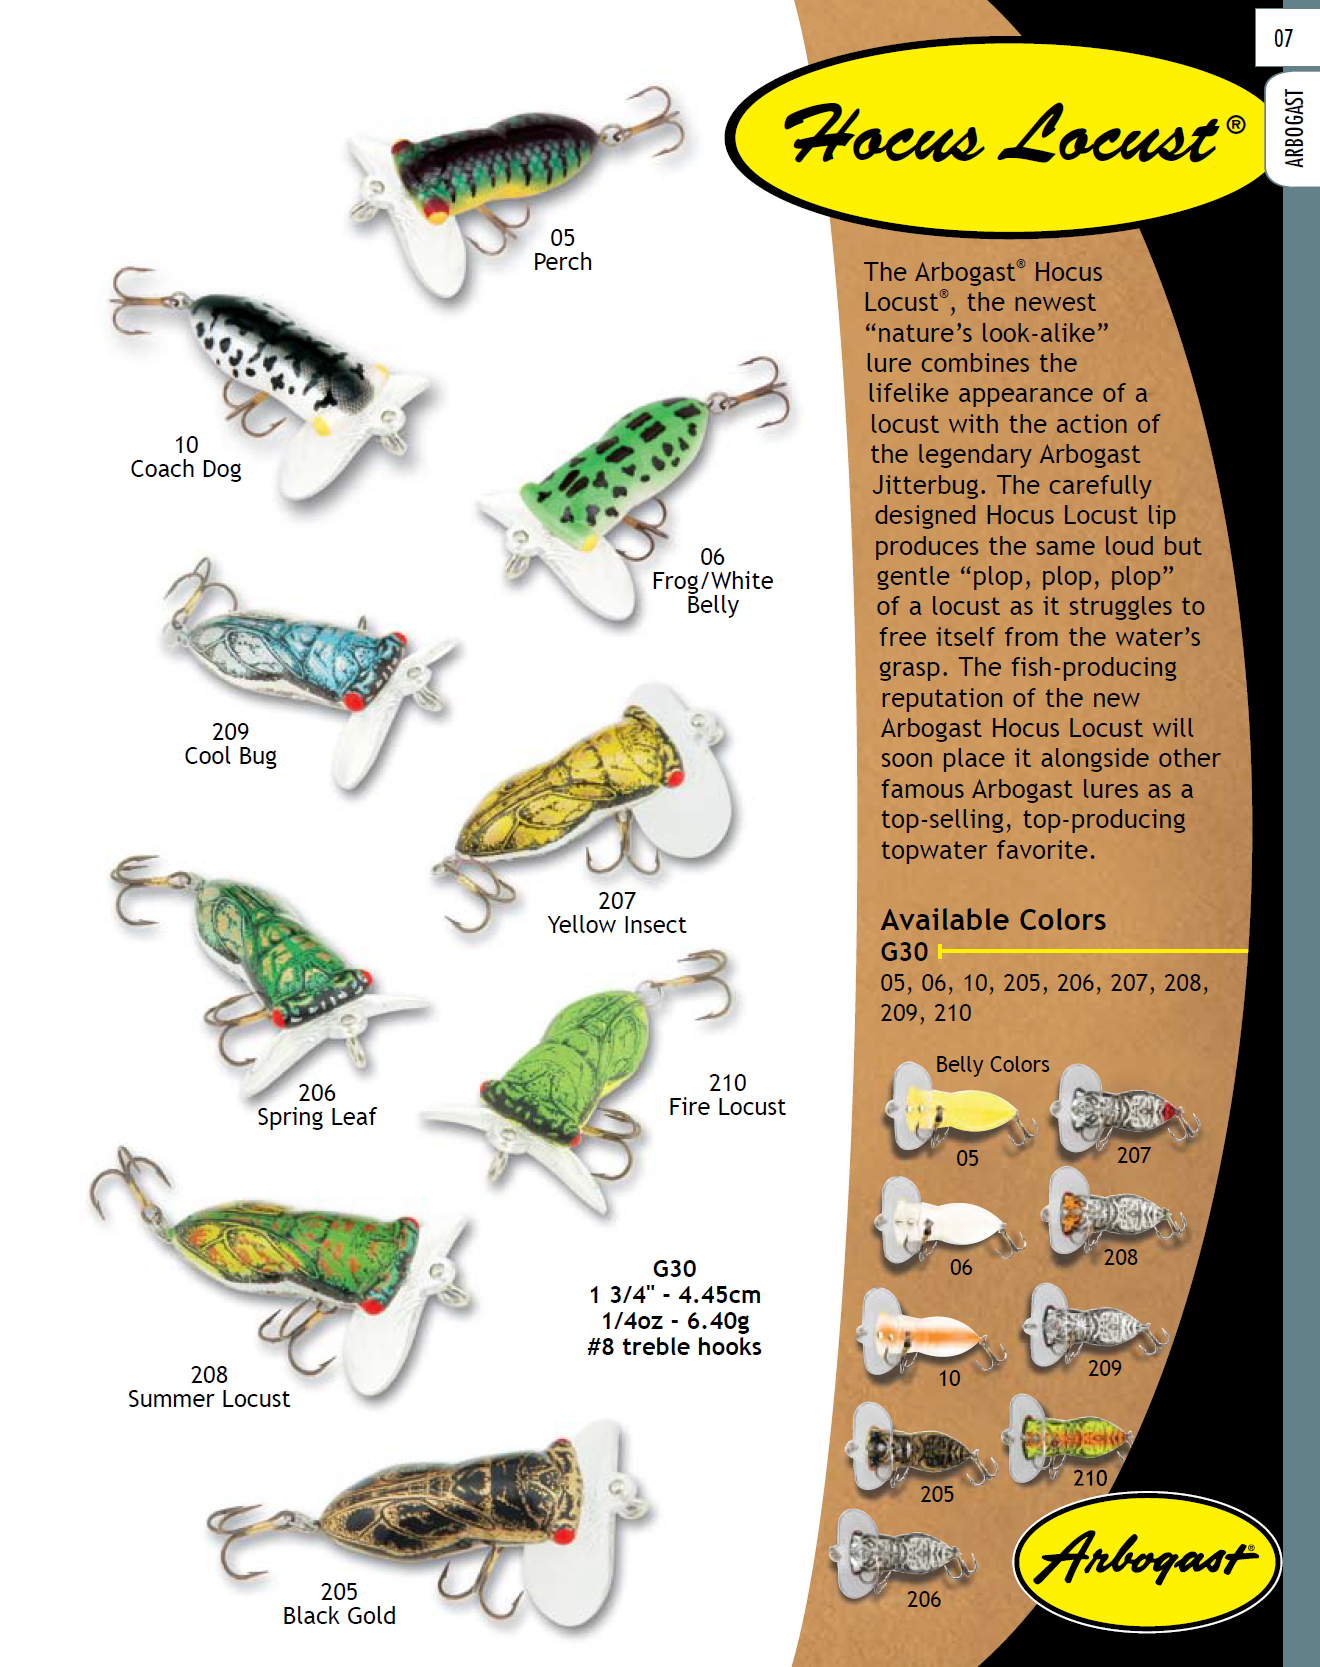 Arbogast hocus locust 2009 color chart fishing lure color charts we are sharing 3 of the top 10 brand new bass lures find this pin and more on fishing lure color charts nvjuhfo Gallery